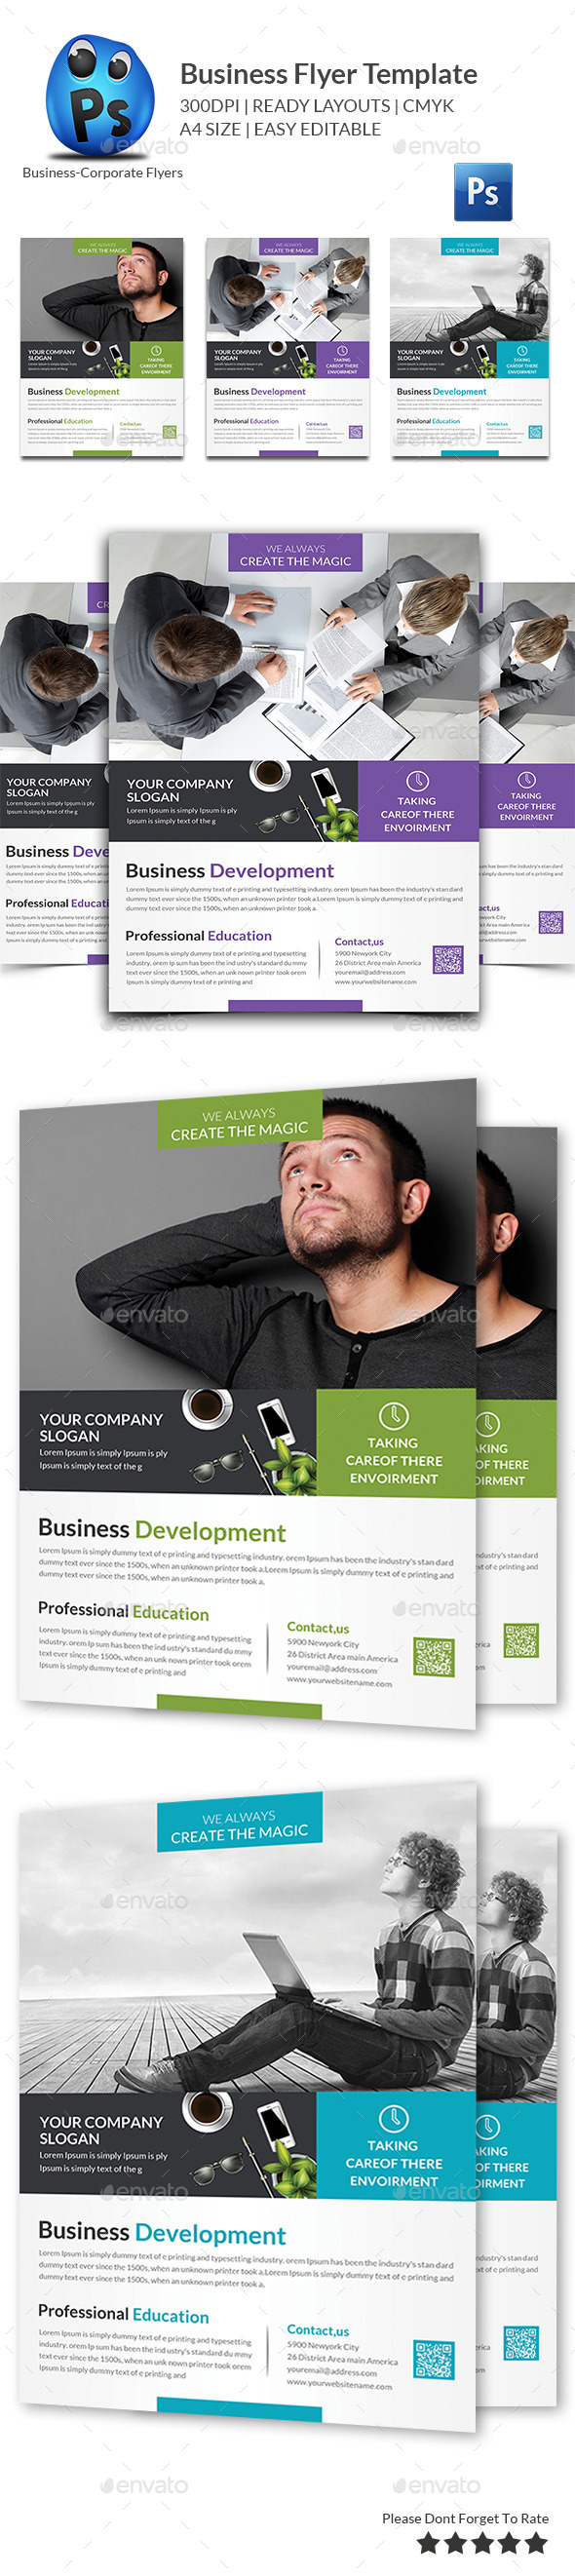 GraphicRiver Business Flyer Template 11509330